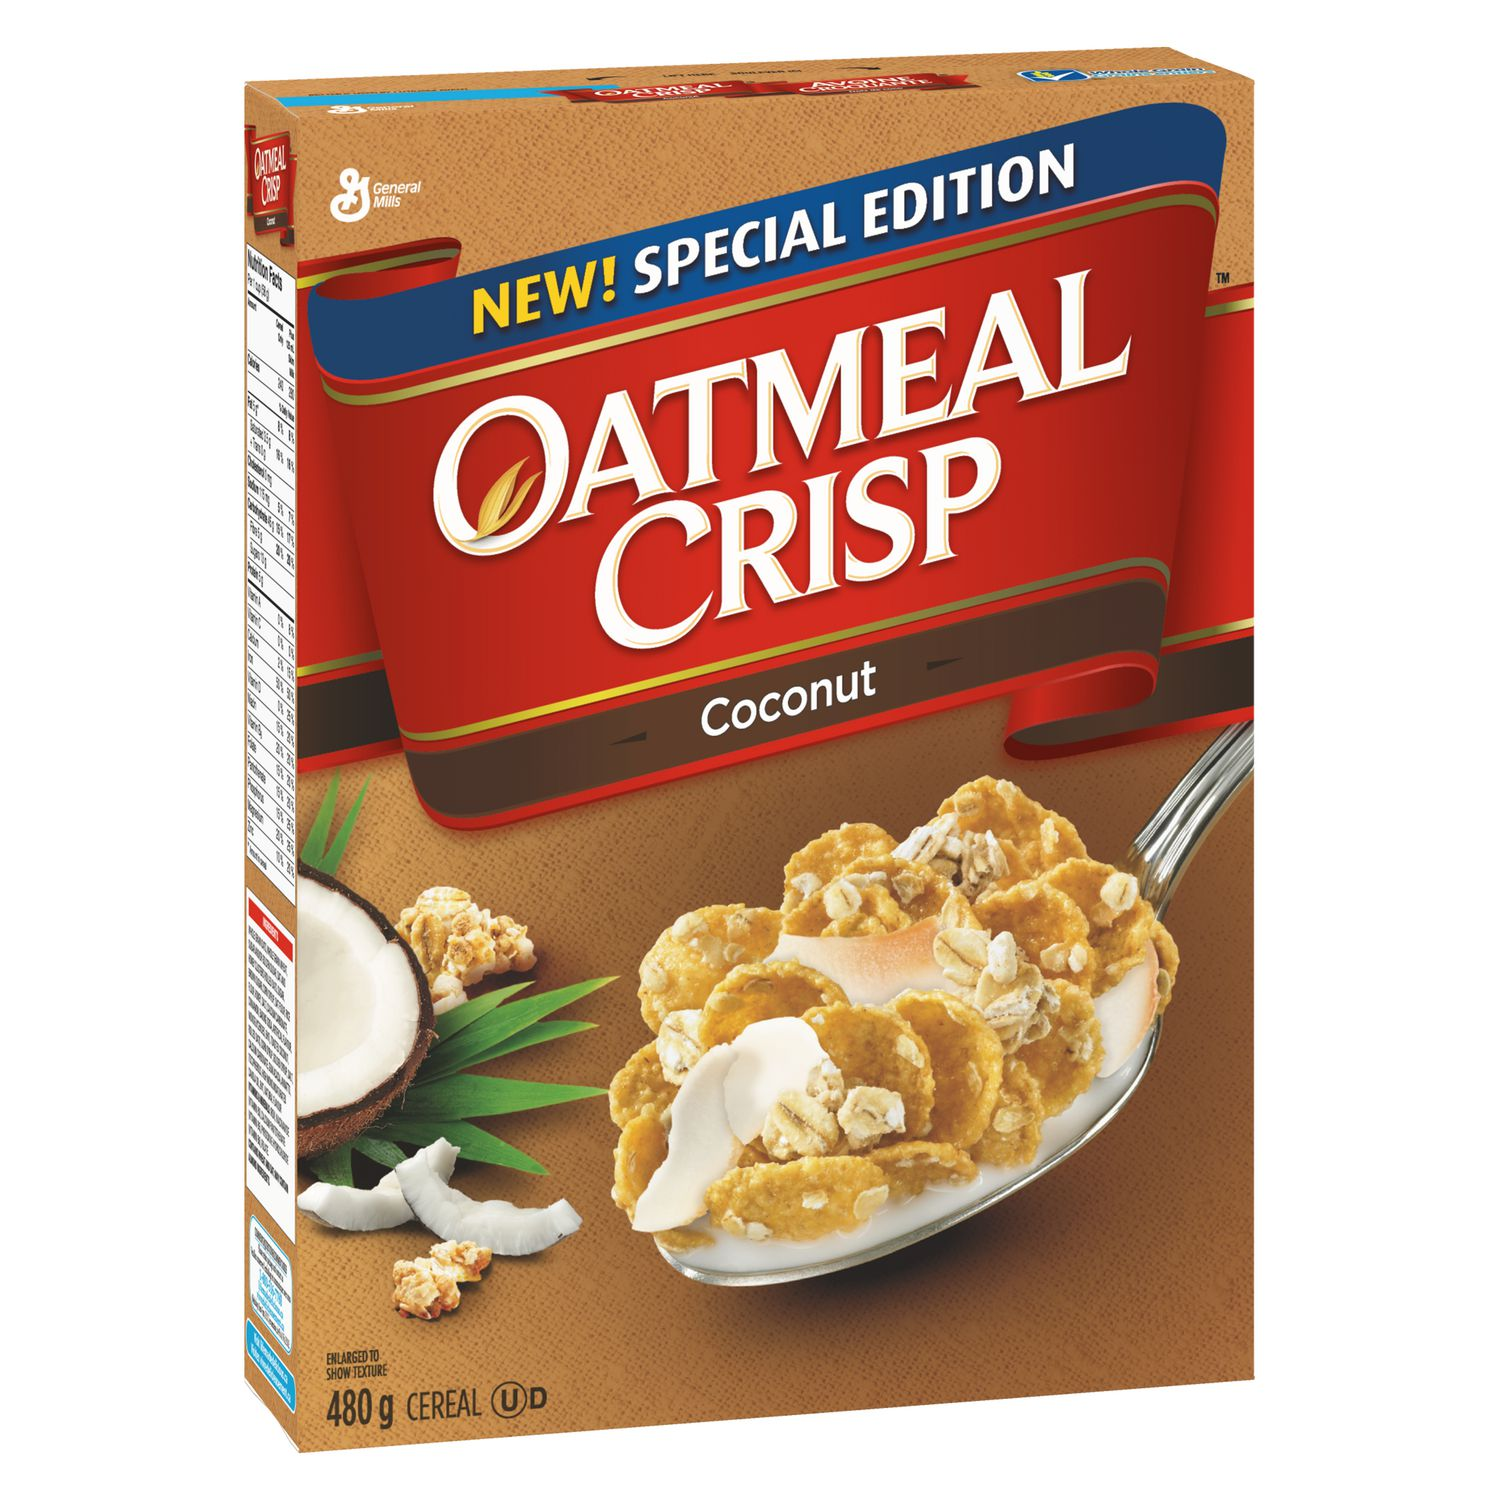 Oatmeal Crisp New! Special Edition Coconut Cereal